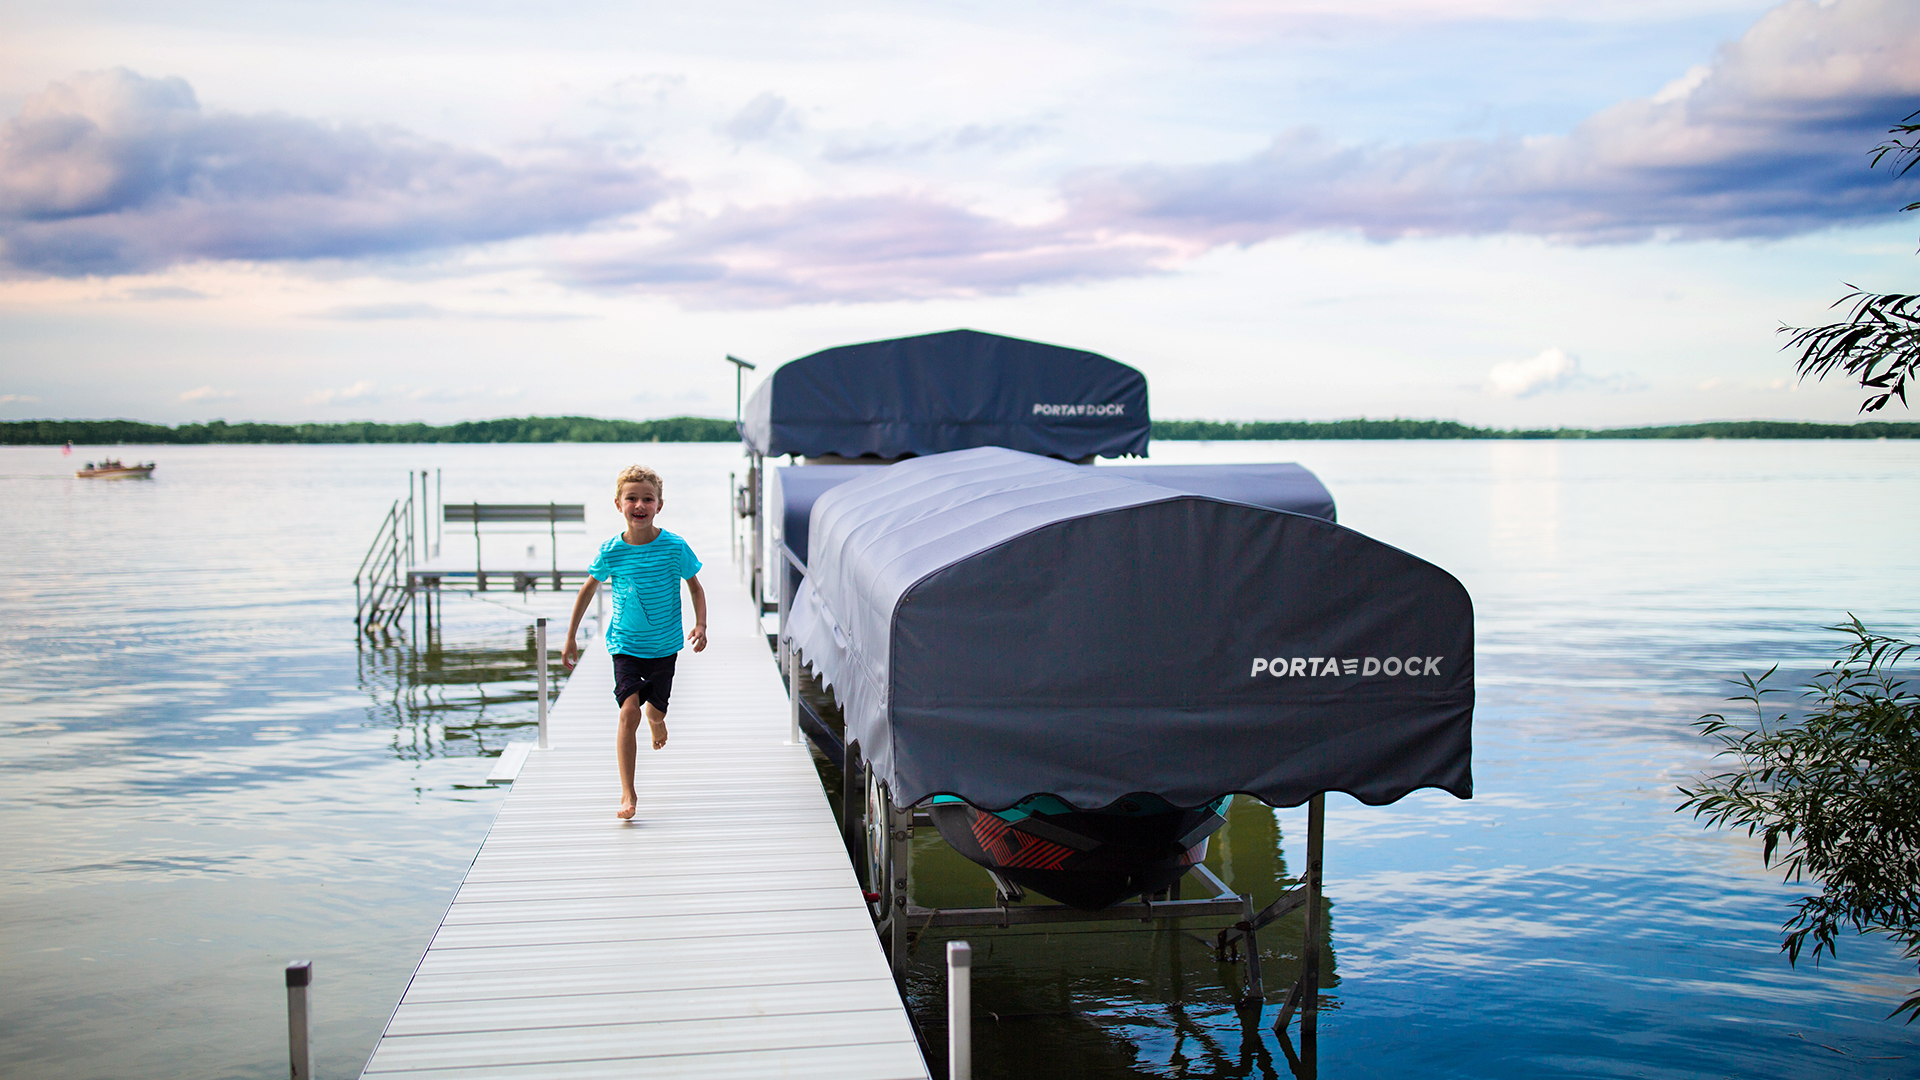 Child enjoying the summer on a Porta-Dock dock